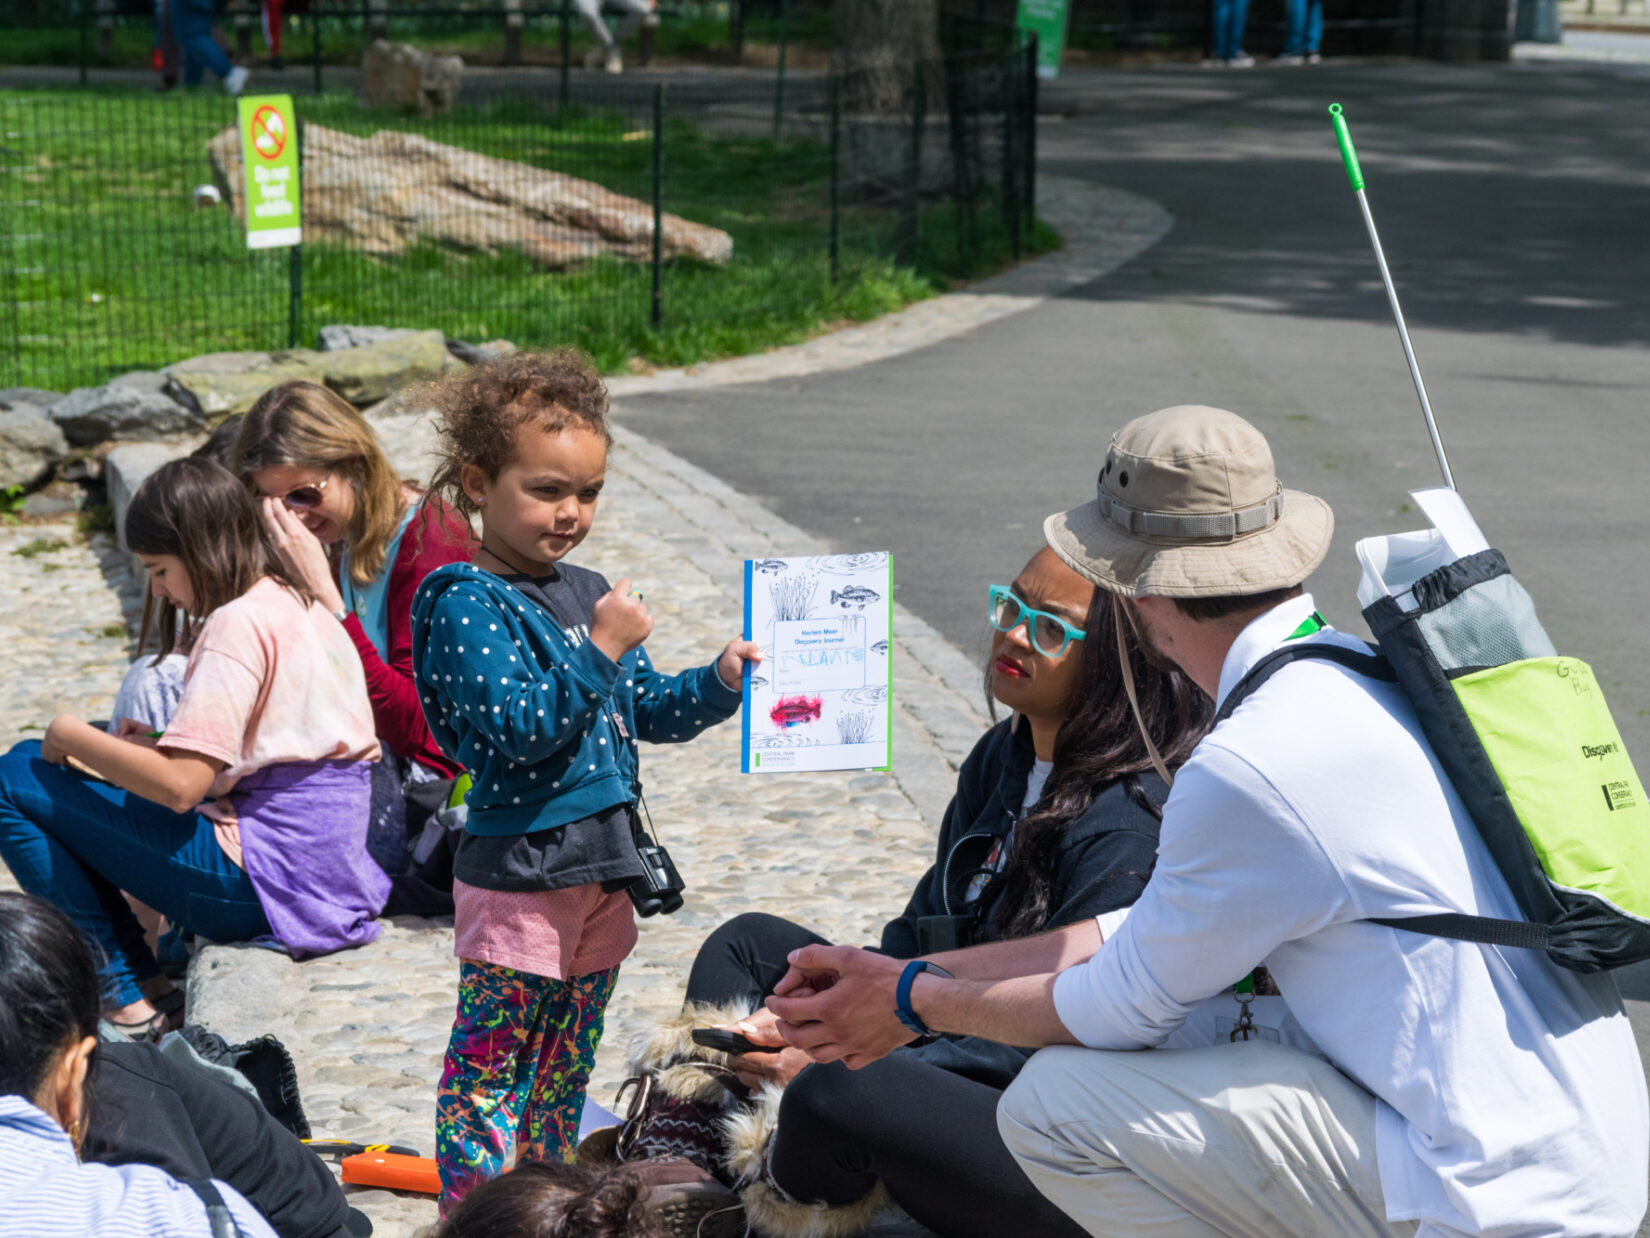 A young girl shows her work to a Park guide